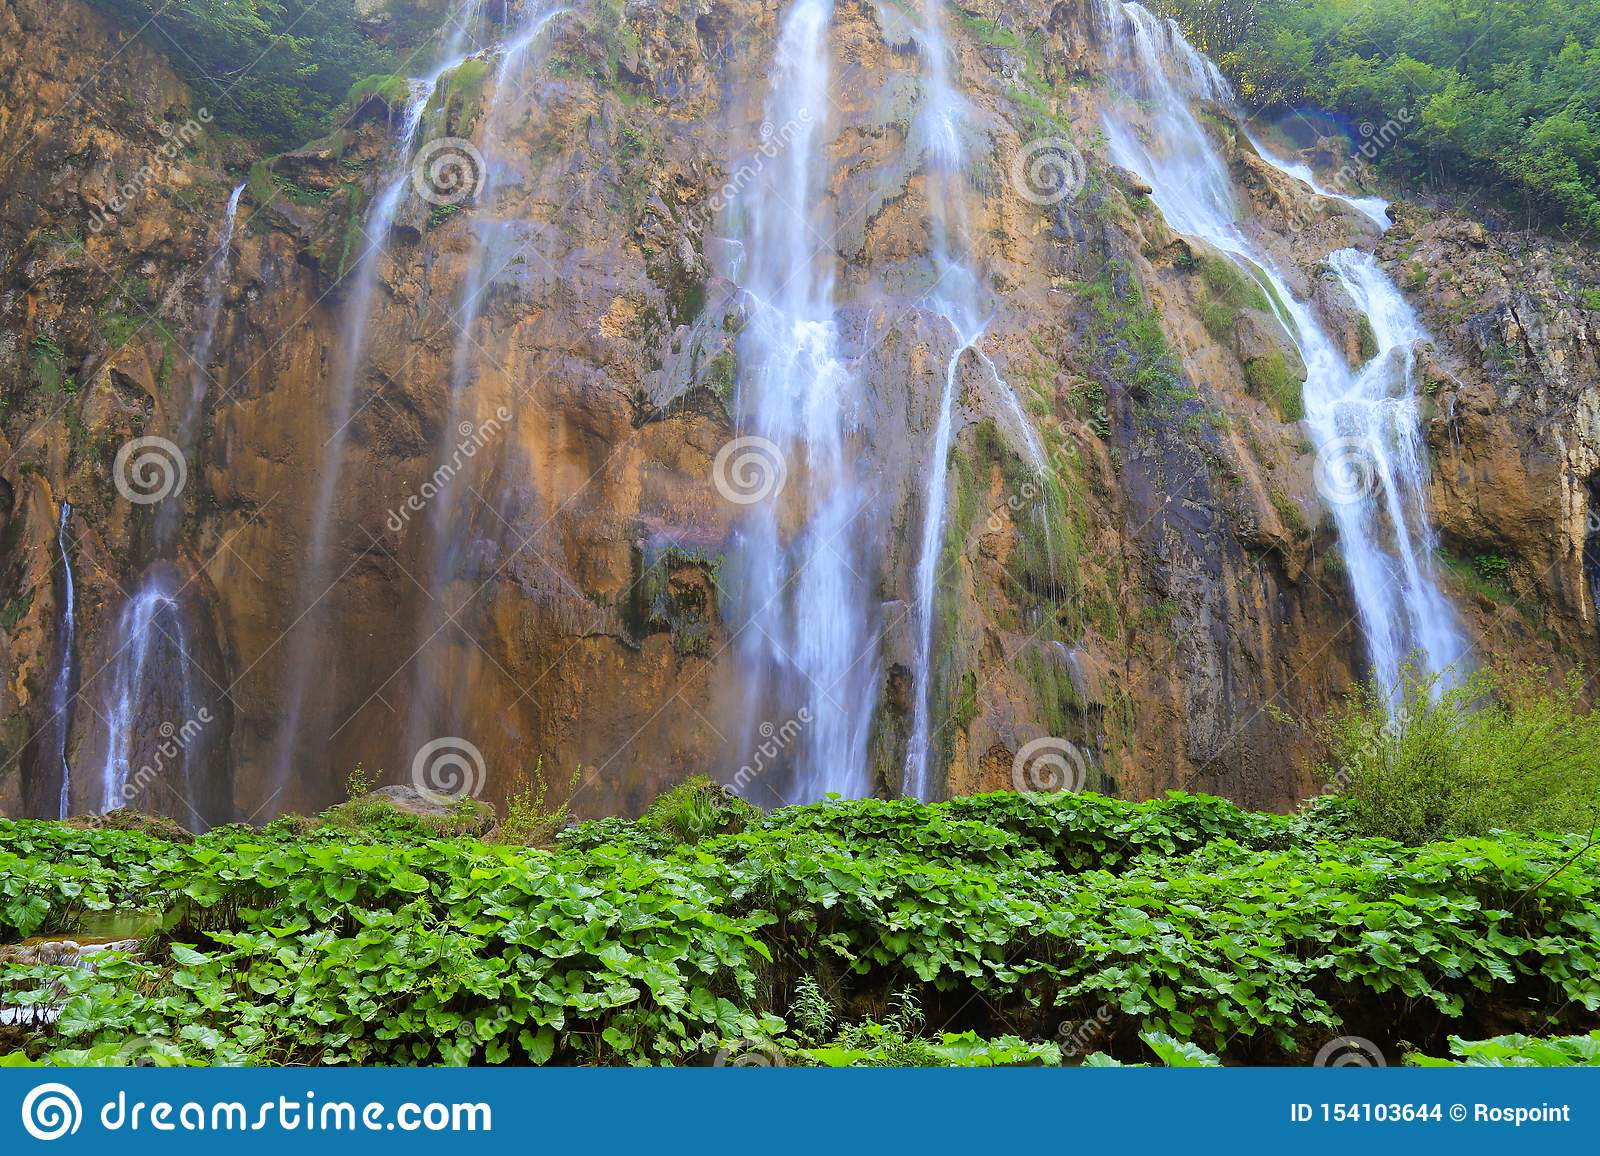 A waterfall among large stones in the Plitvice Lakes Landscape Park, Croatia in spring or summer. Croatian waterfalls